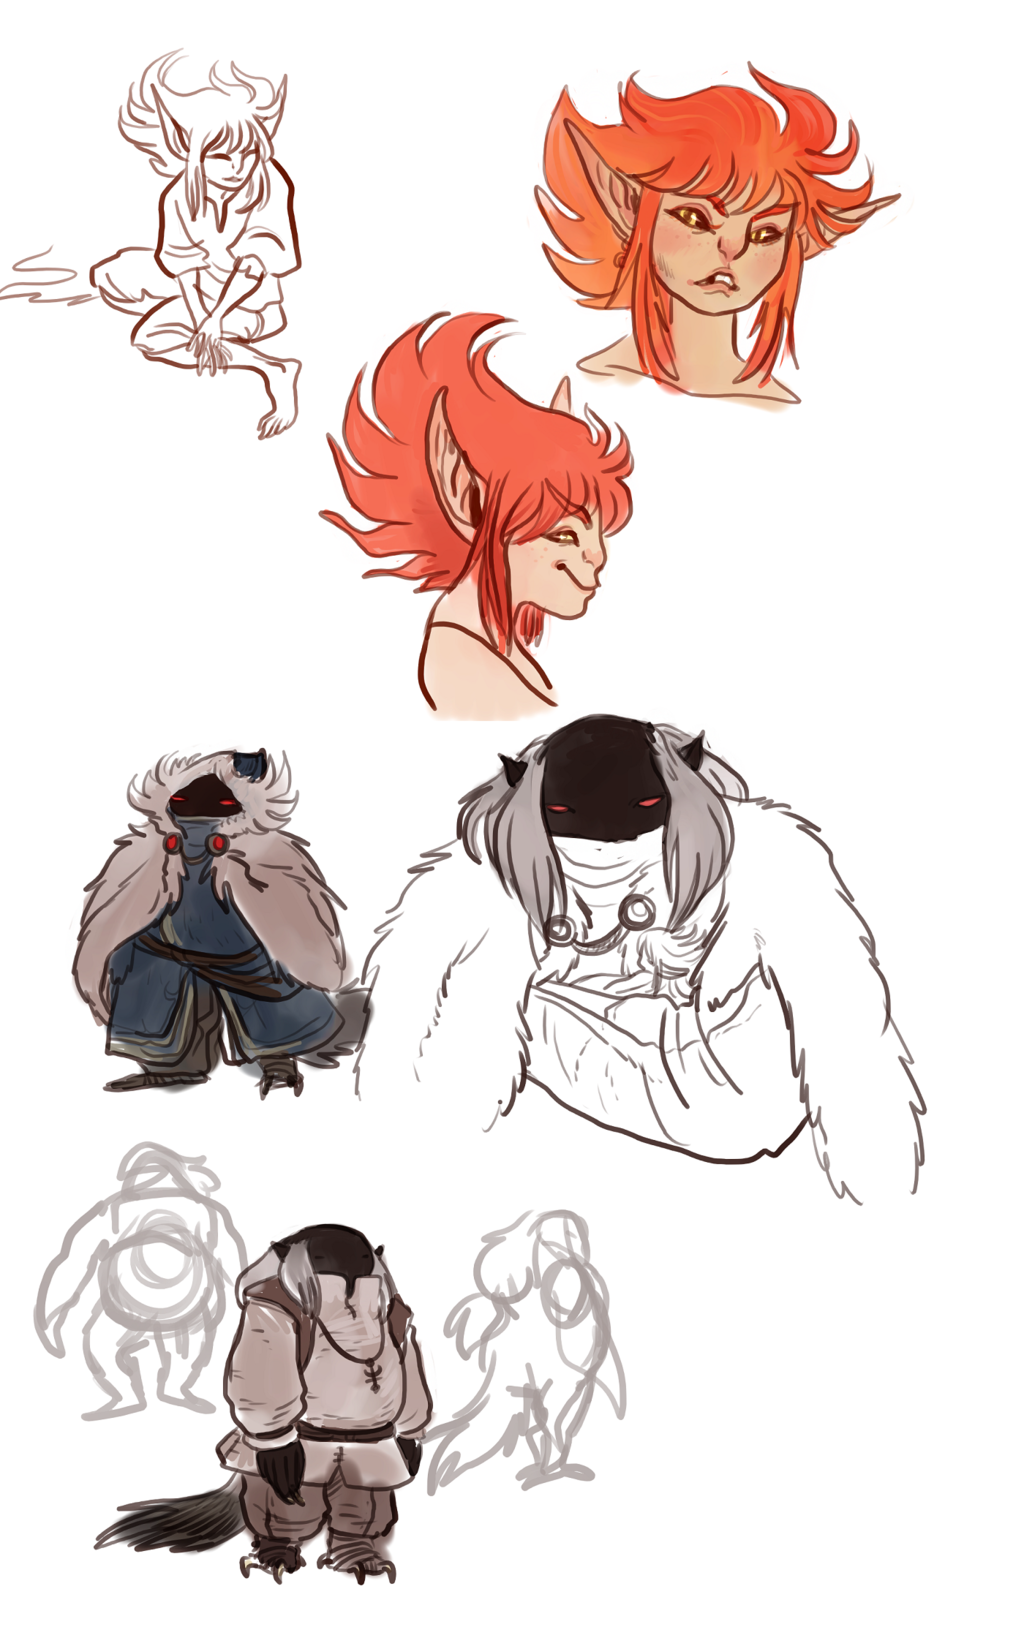 revisiting old characters AGAIN